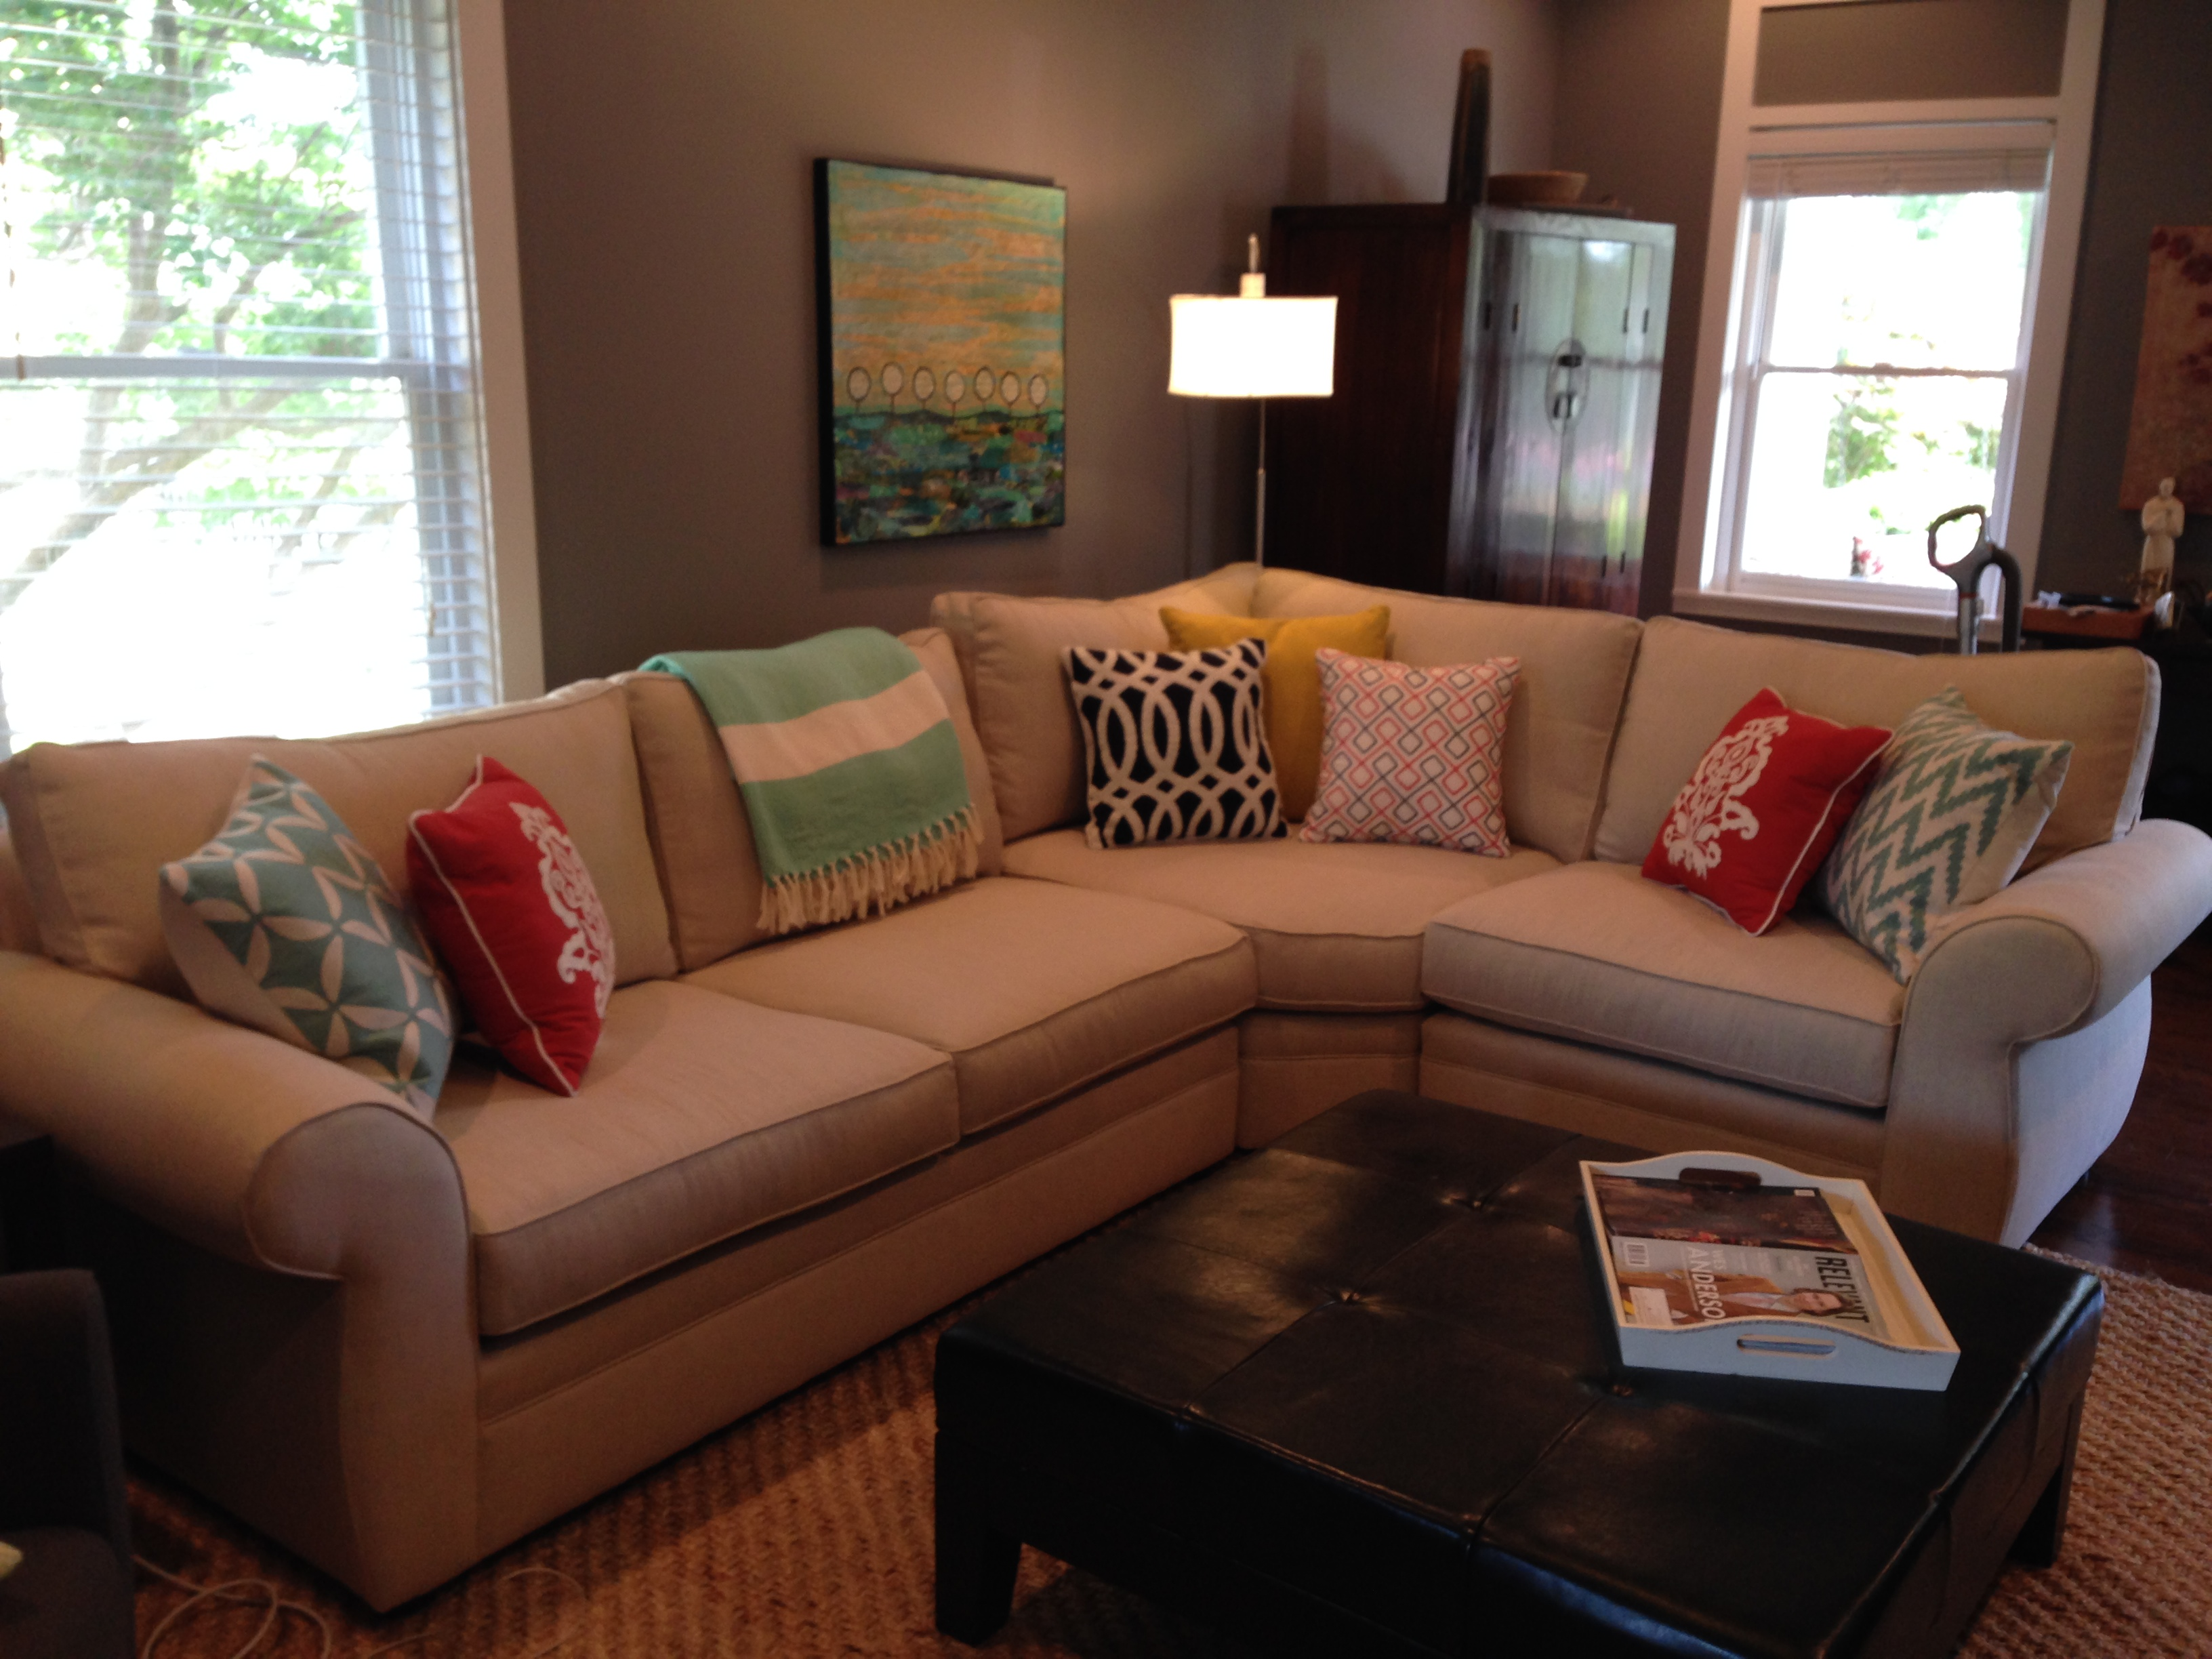 Pottery Barn Couch Reviews | HomesFeed